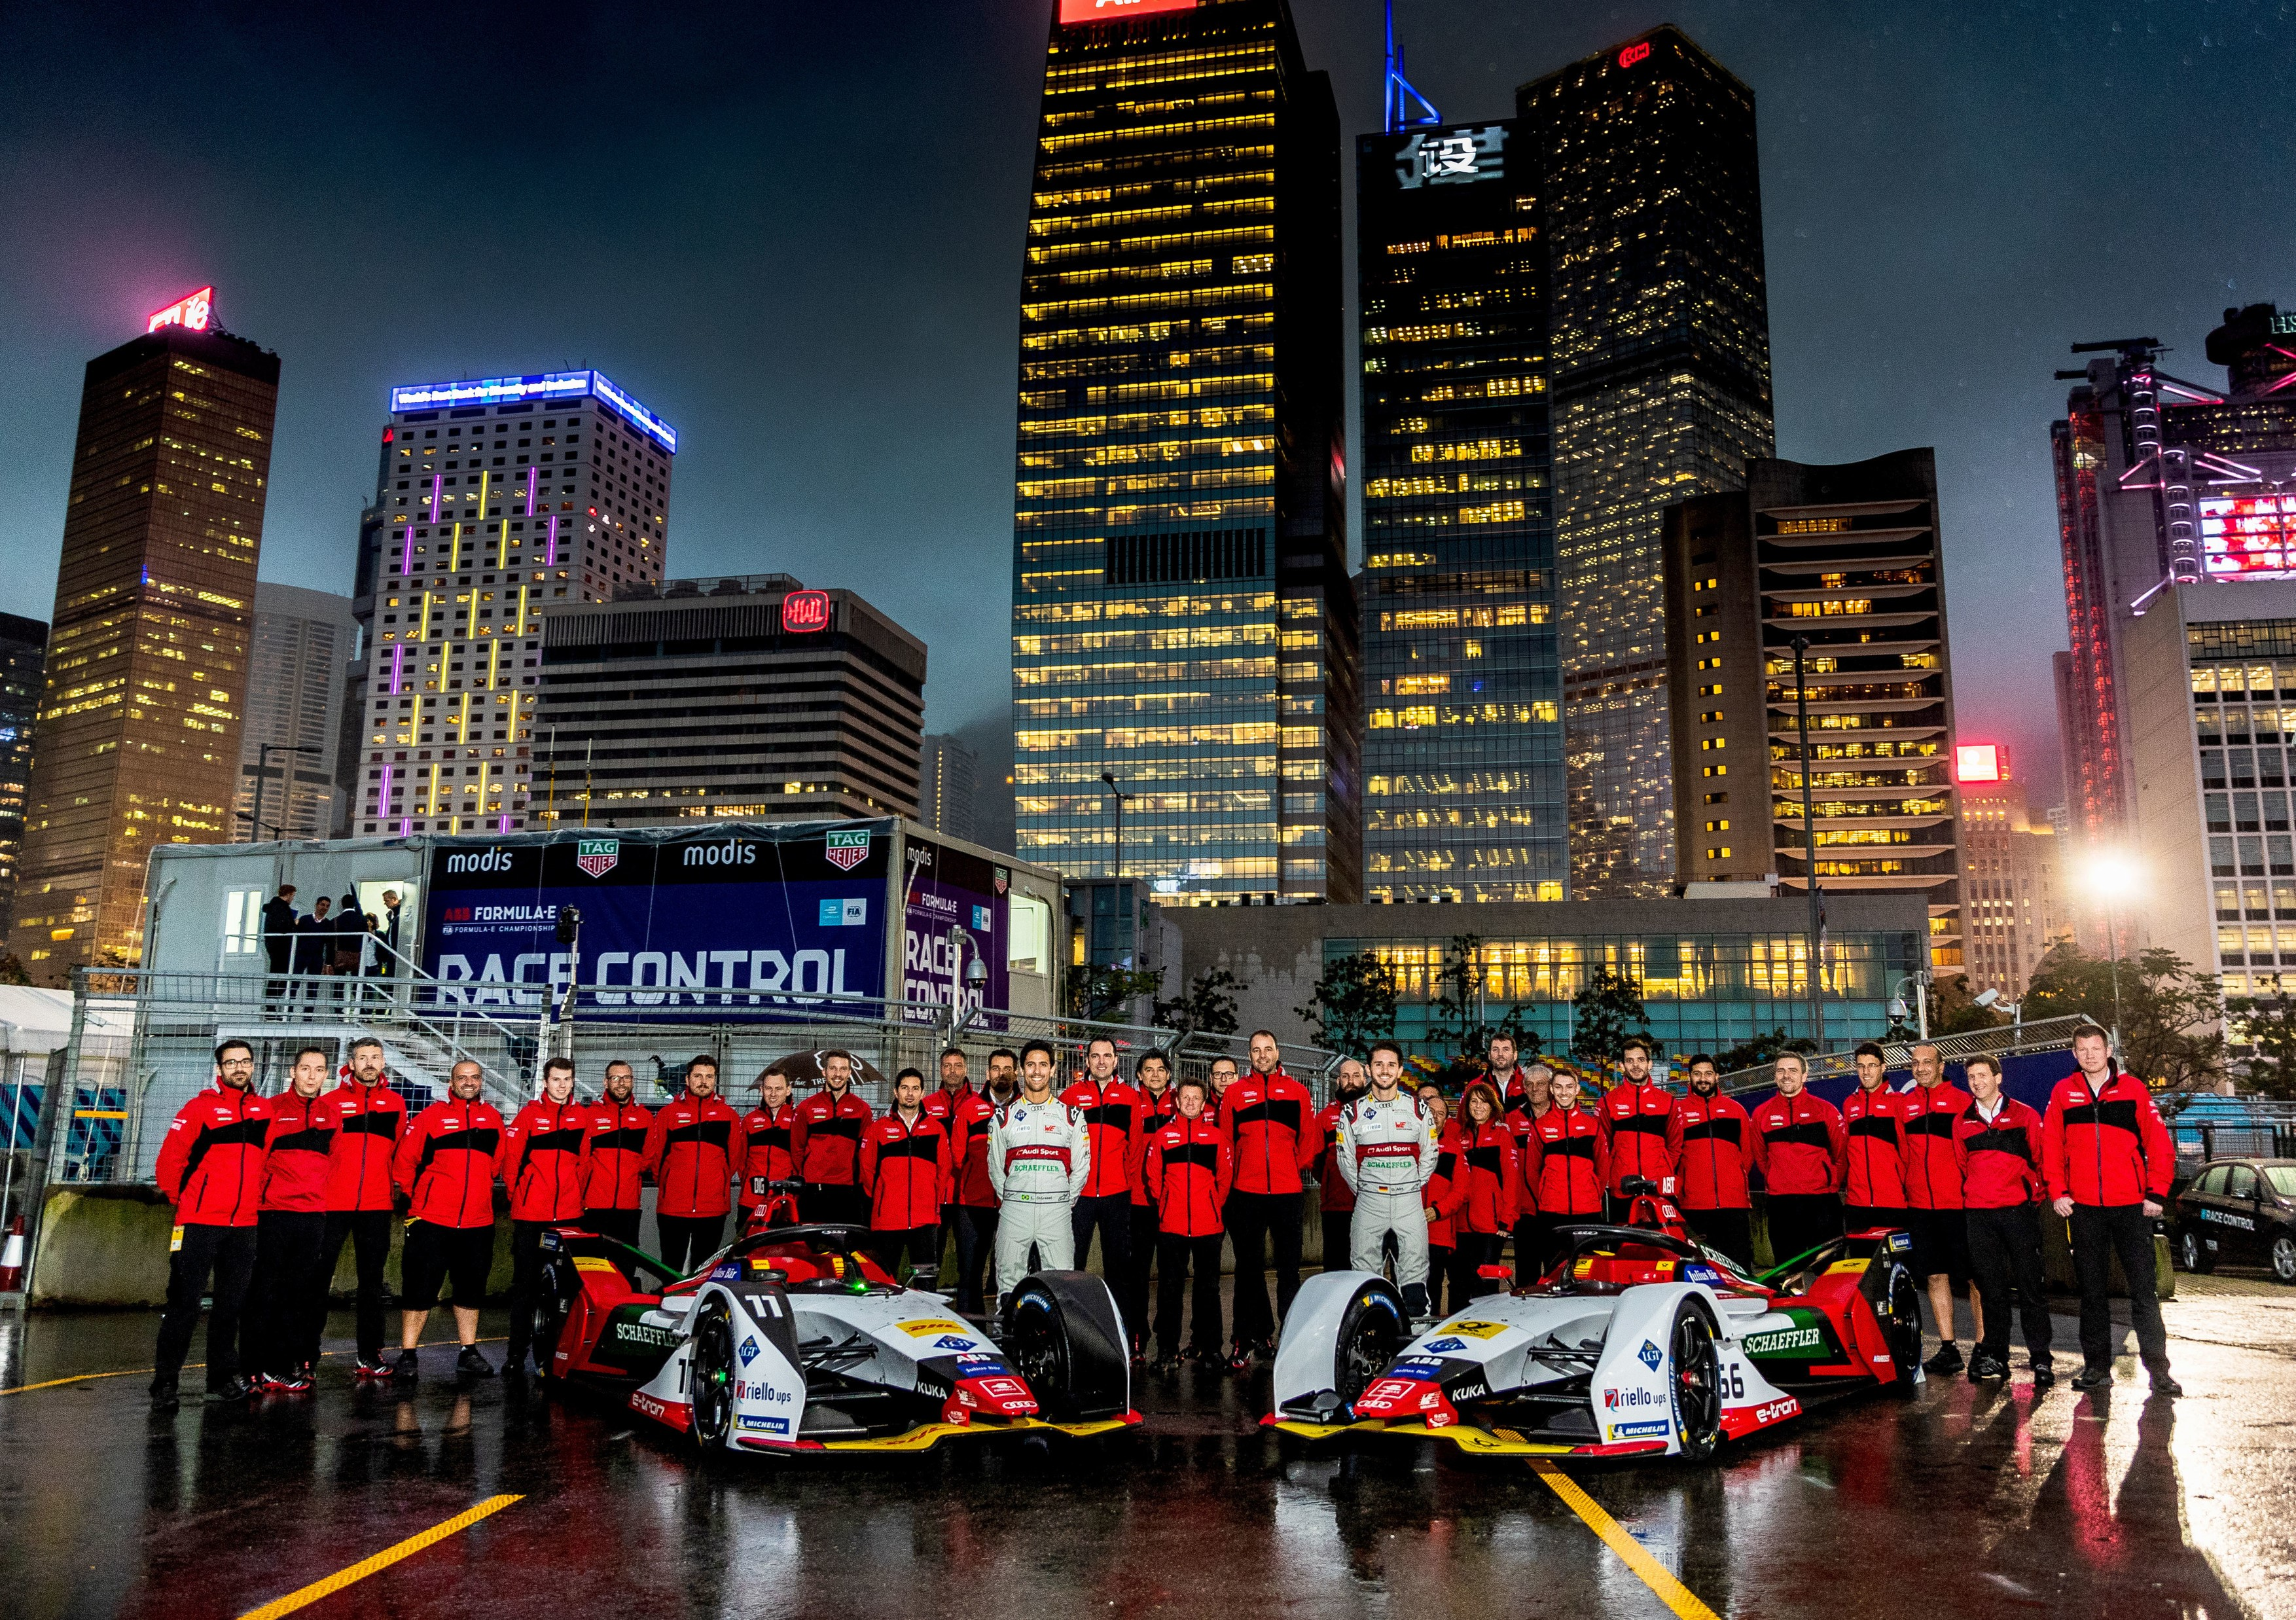 , Formula E technology partnership with Audi and eMobility strategy